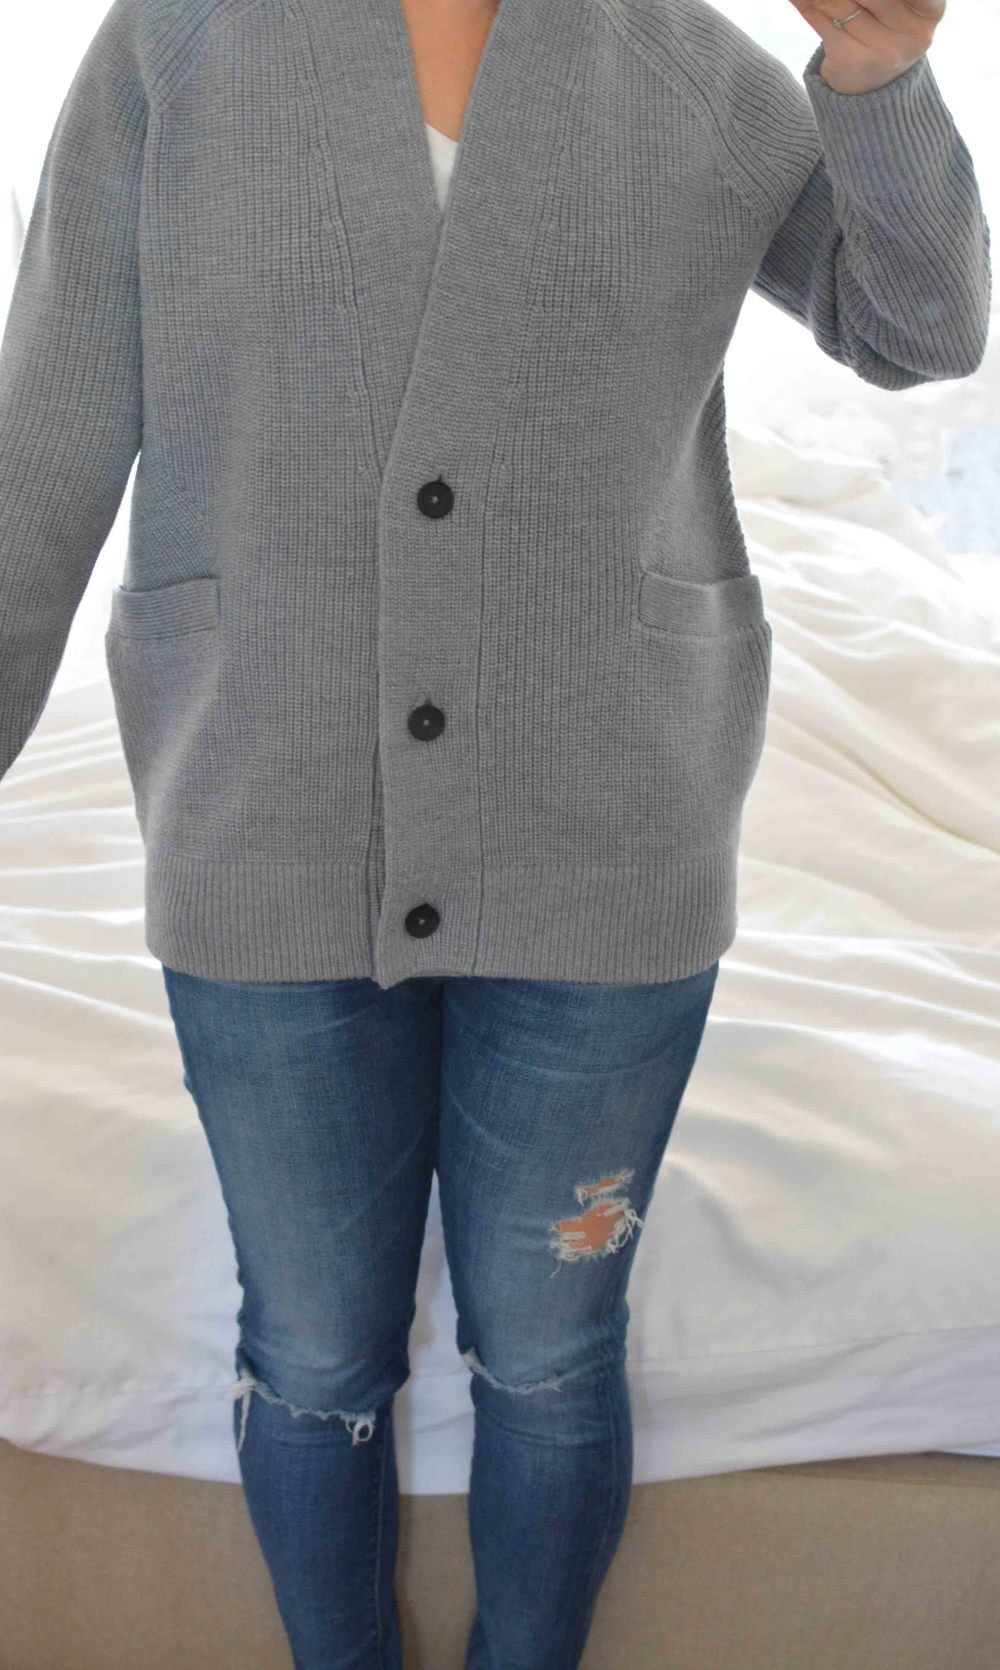 Everlane Chunky Wool Knit Sweater Review — Temporary Housewifey